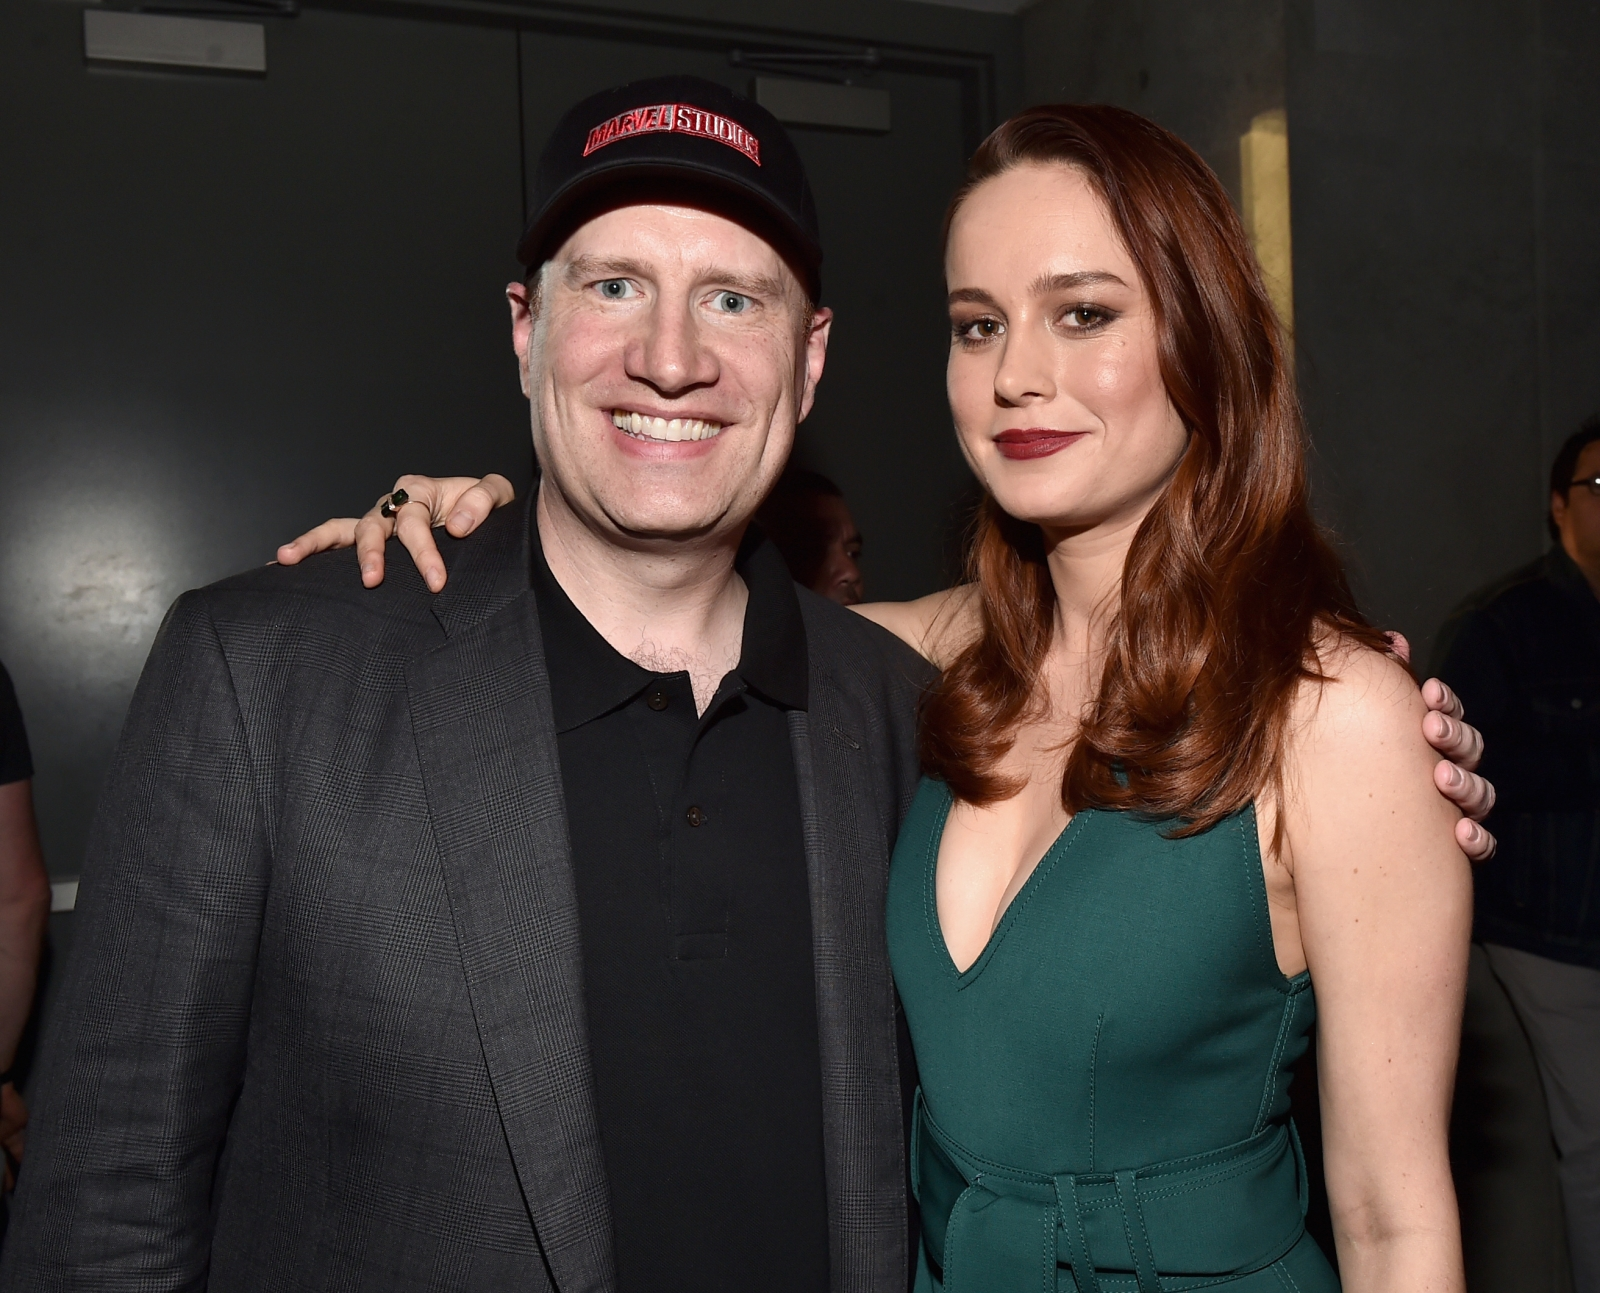 Kevin Feige and Brie Larson